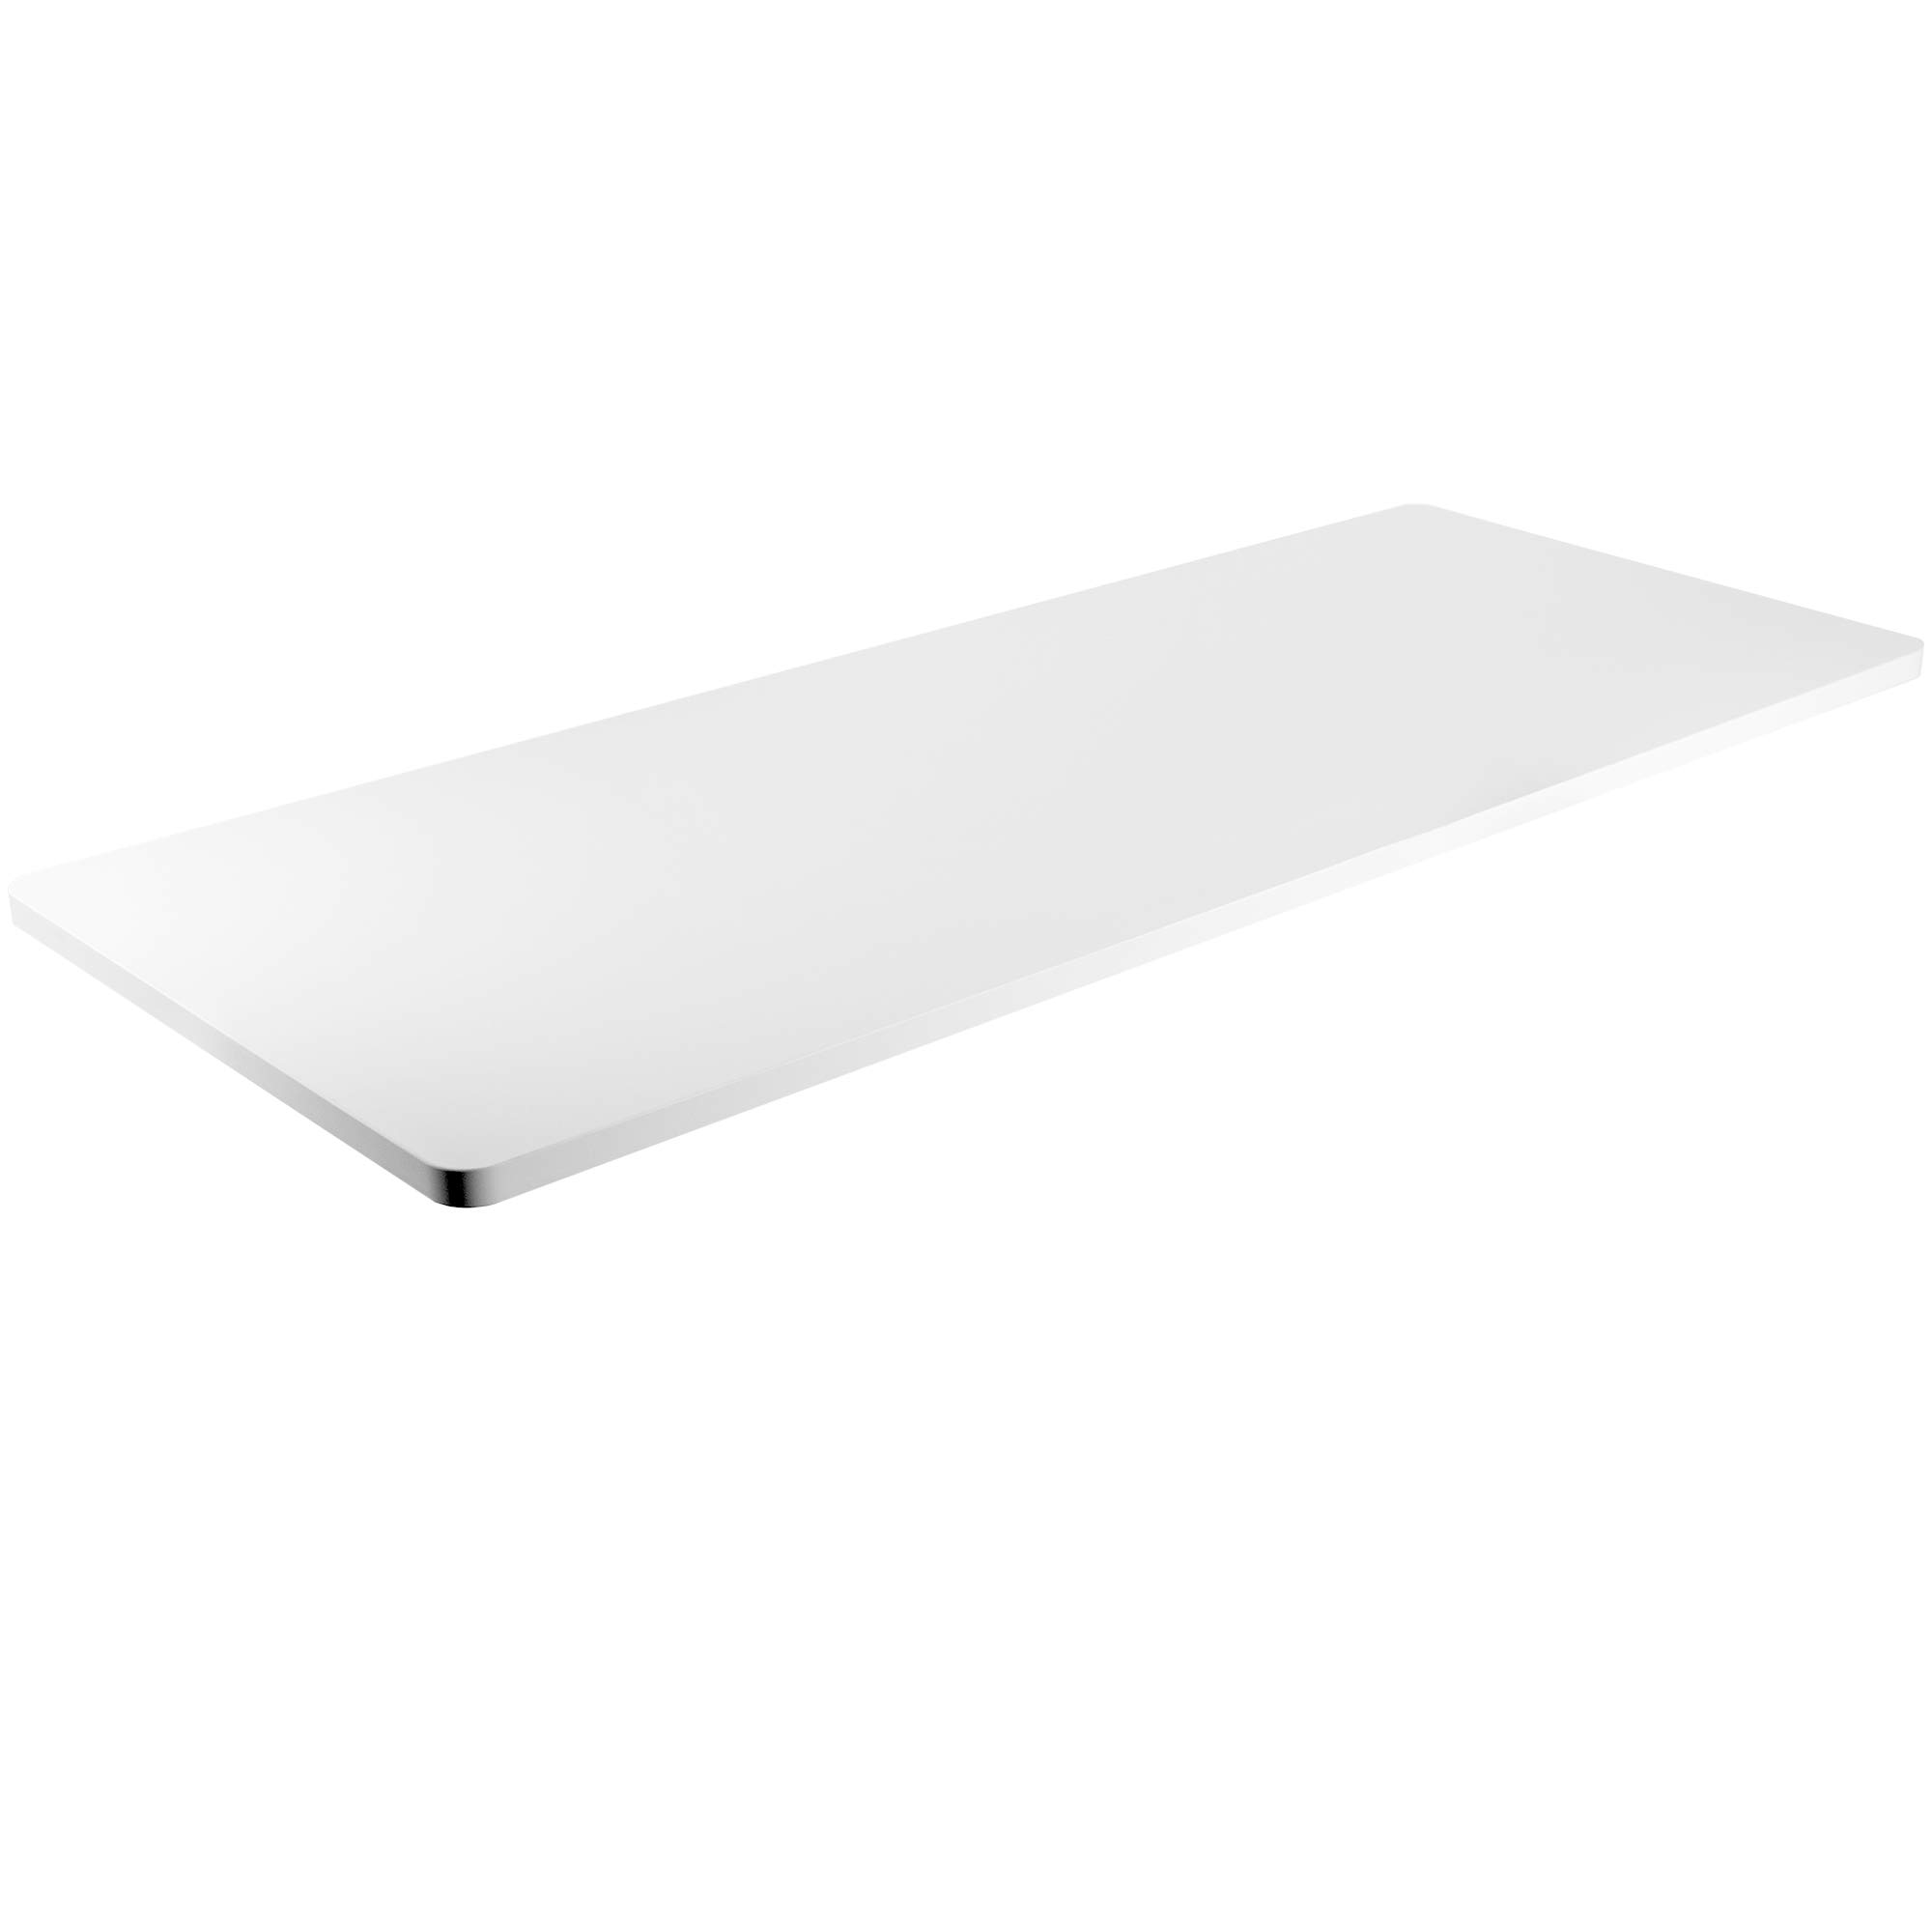 VIVO White 60 x 24 inch Universal Table Top for Standard and Sit to Stand Height Adjustable Home and Office Desk Frames (DESK-TOP60W) by VIVO